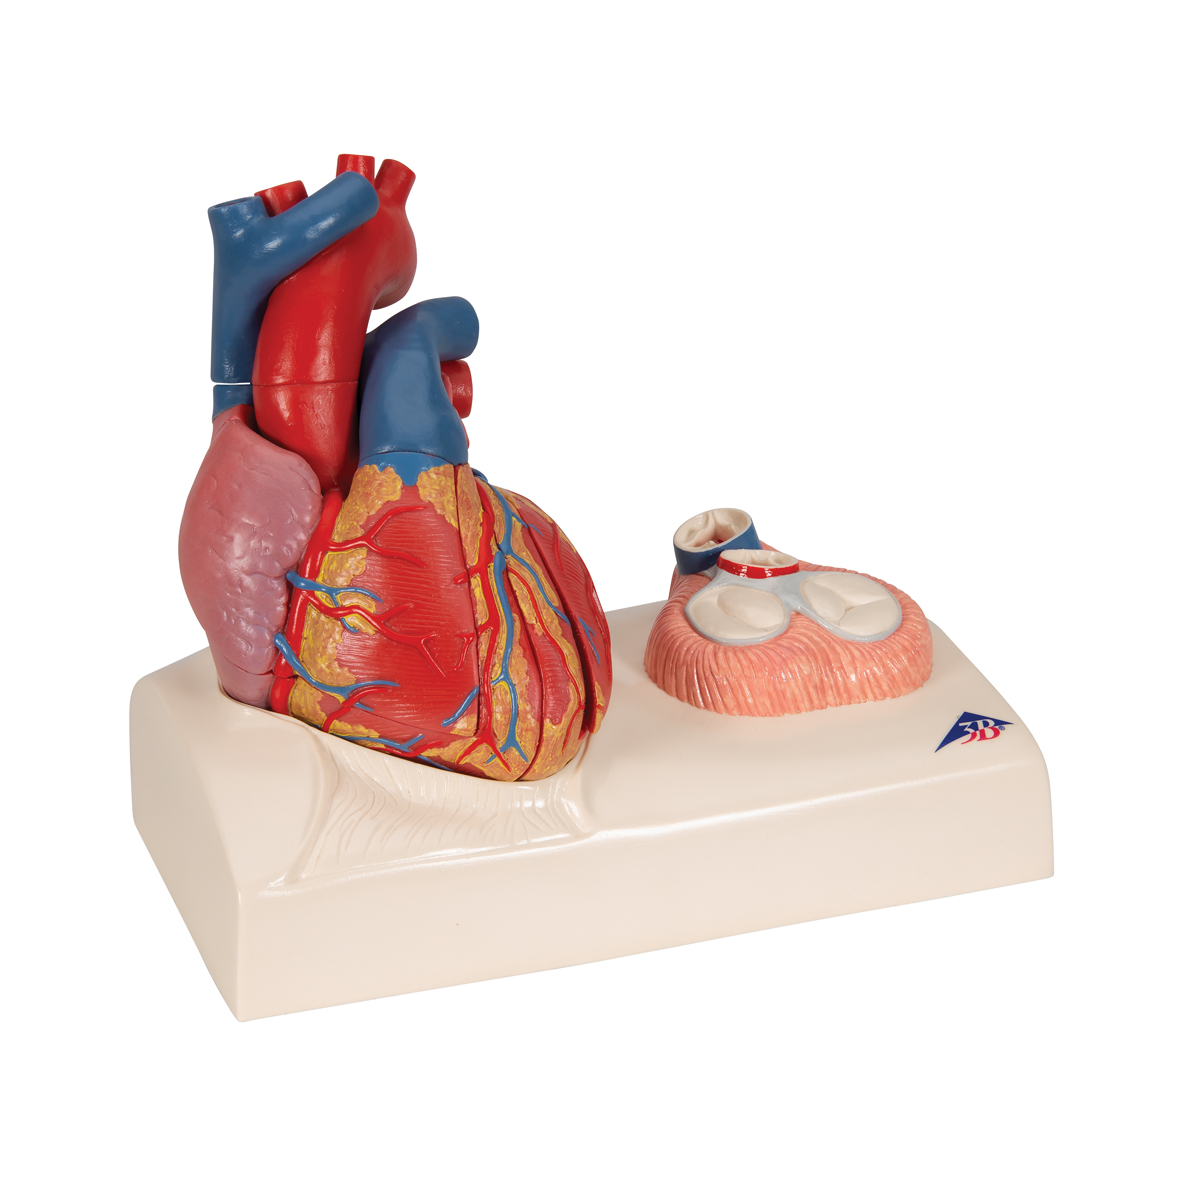 Magnetic Heart model, life-size, 5 parts - 1010006 - 3B Scientific ...